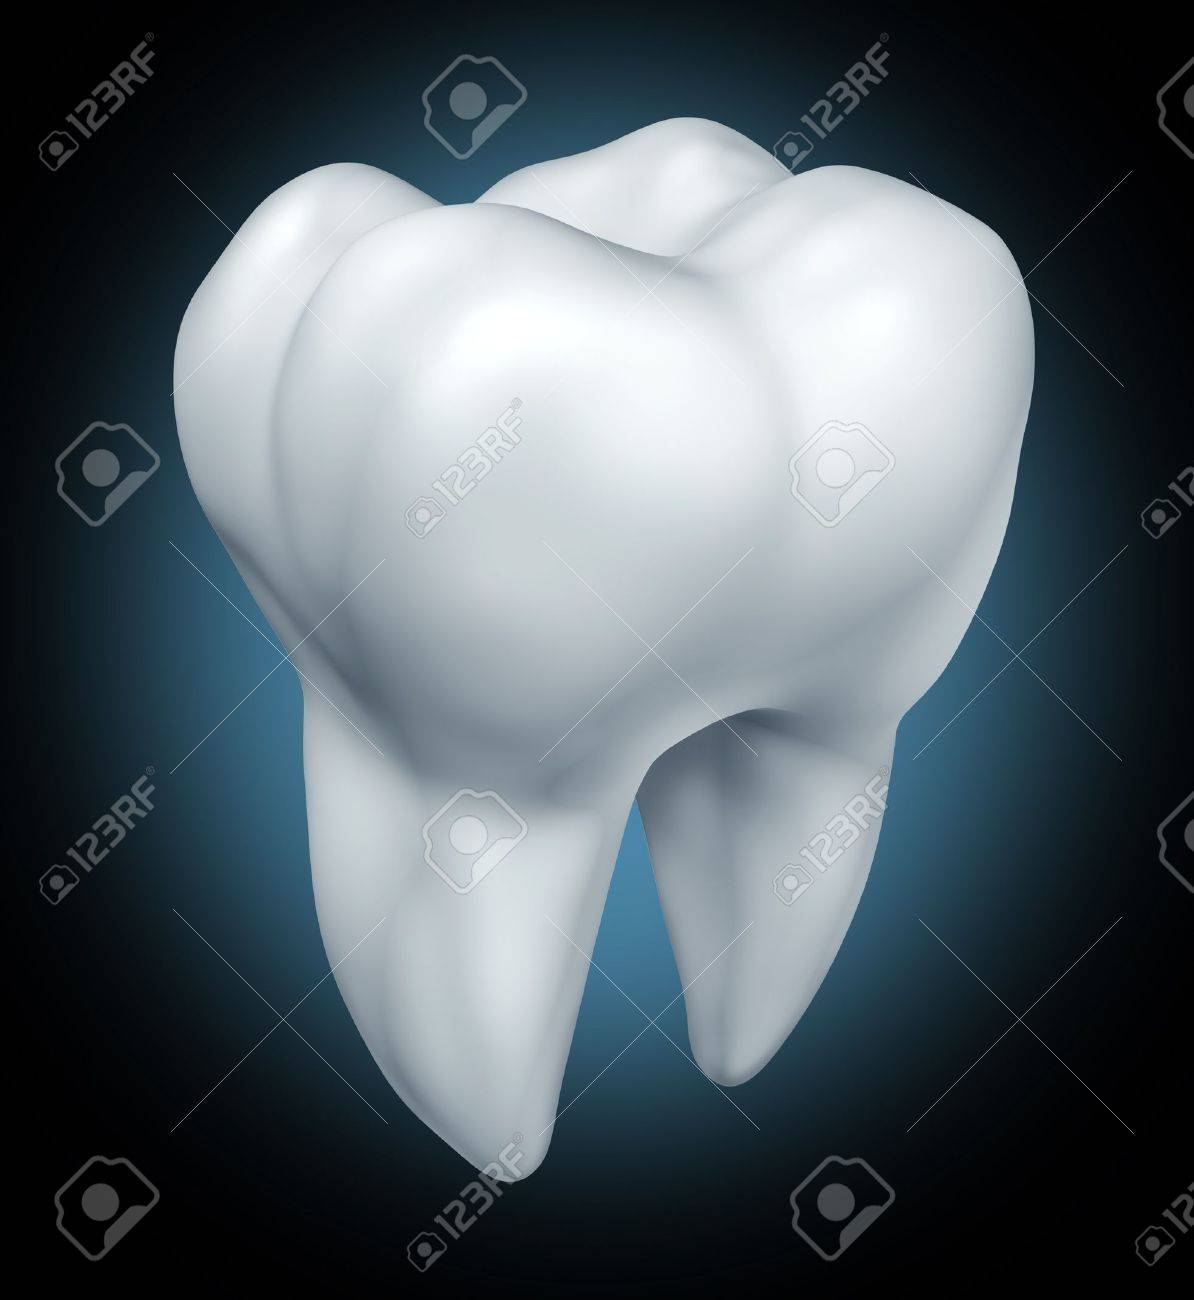 Dental health tooth  symbol representing dentist medicine and dentistry surgery represented by a white single molar tooth on a white background. Stock Photo - 10976394